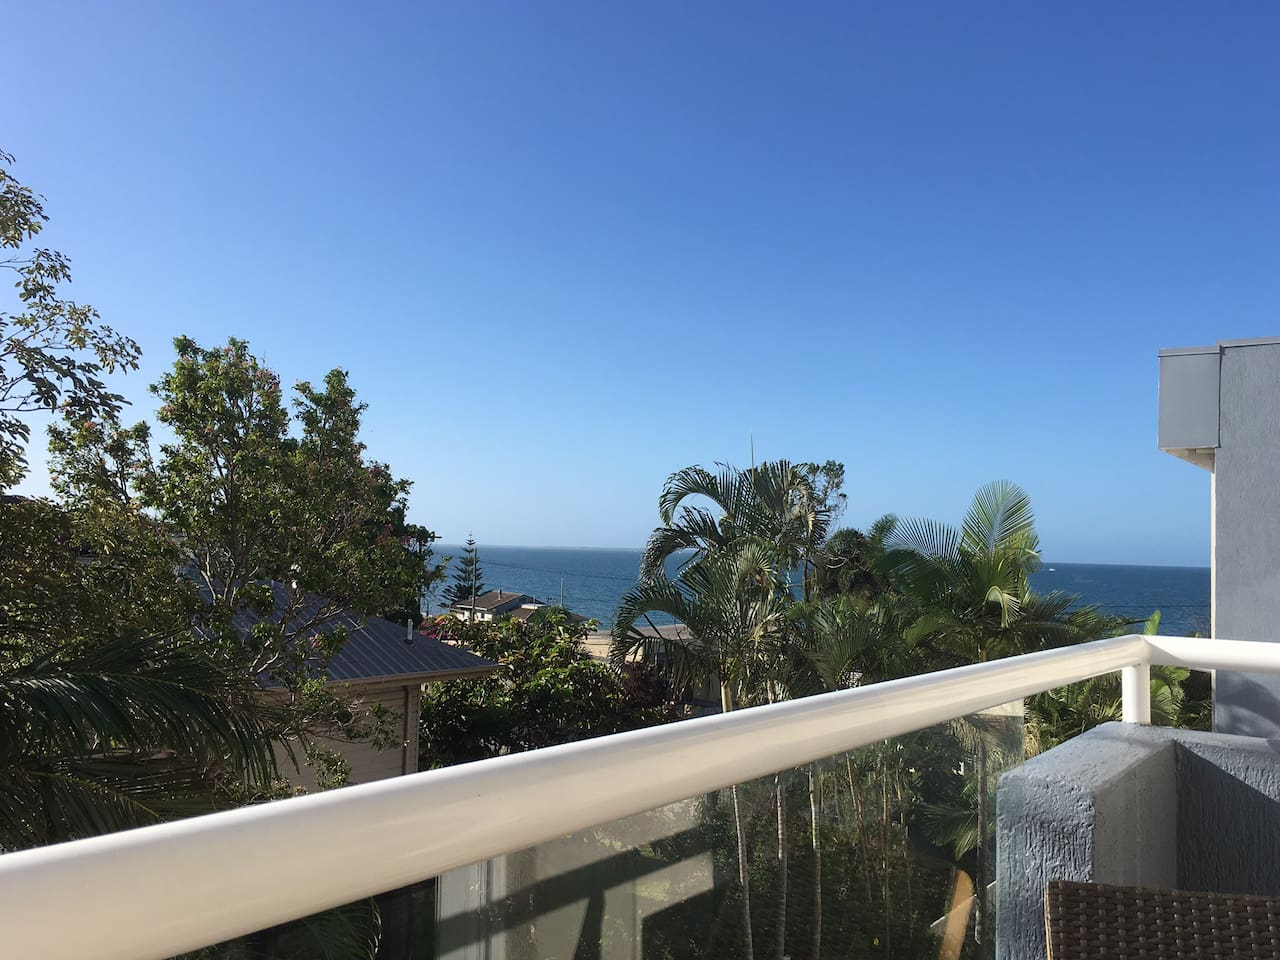 Ocean view from private balcony off the bedroom